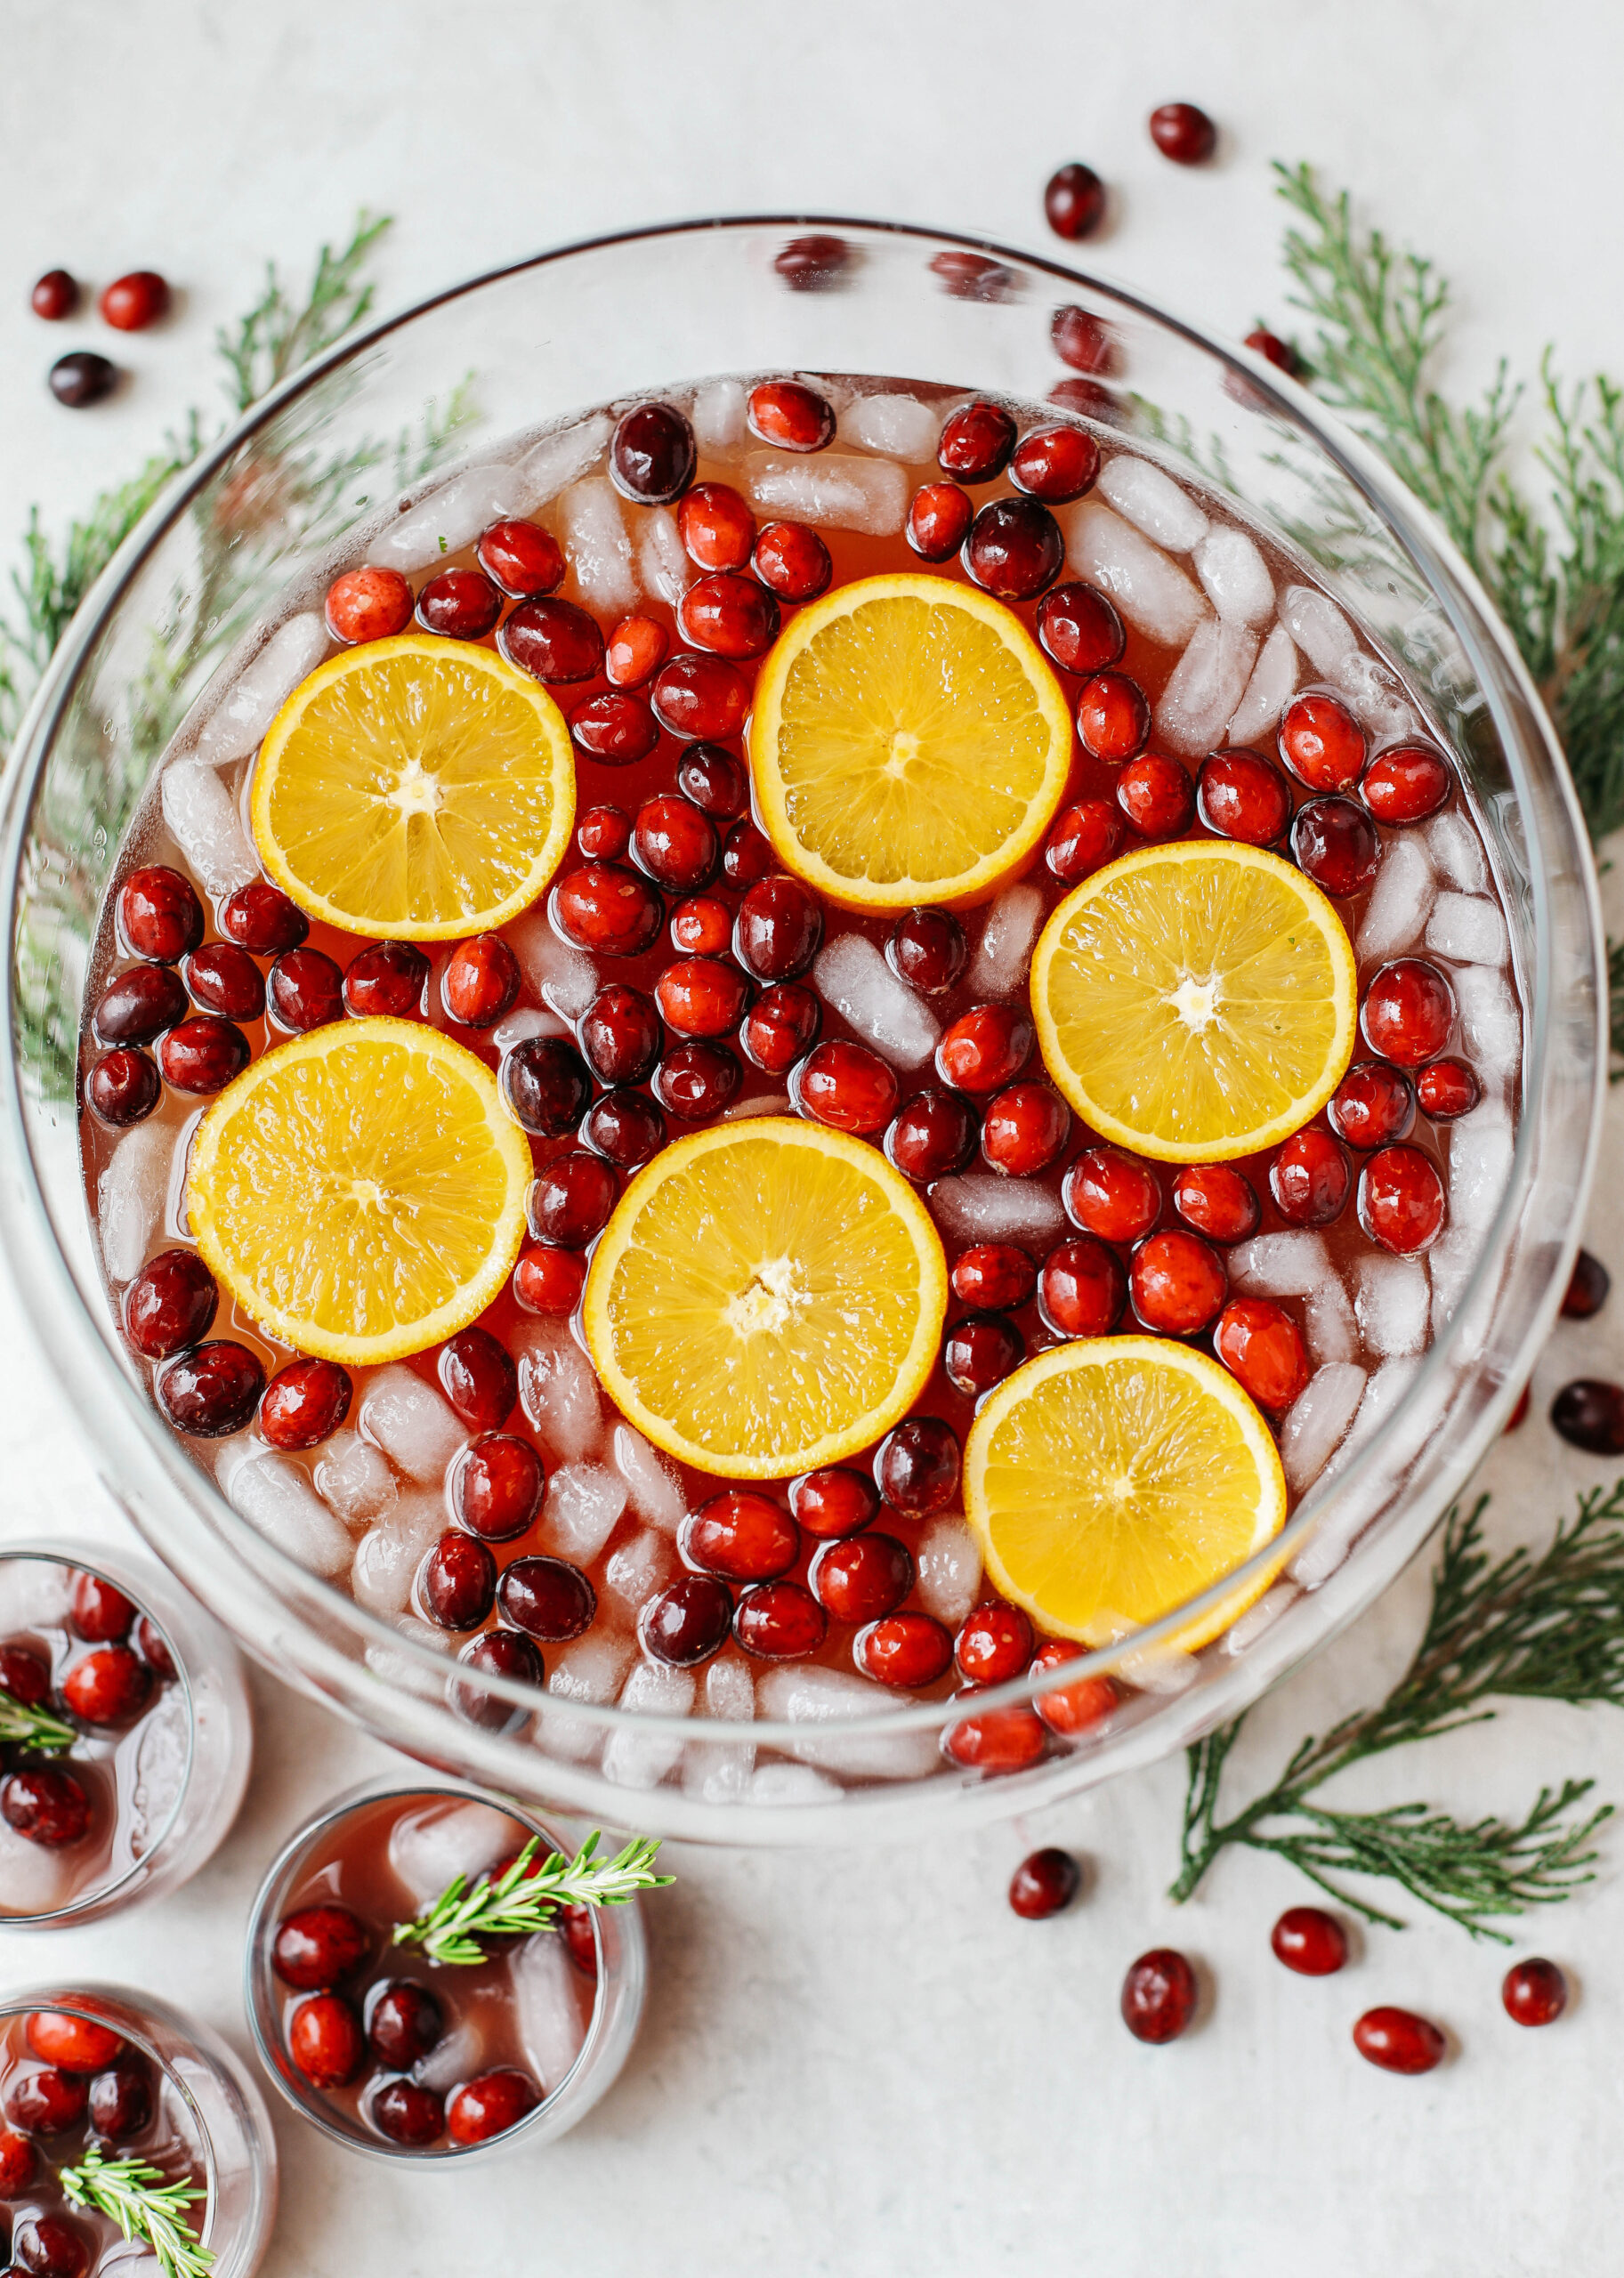 This Sparkling Christmas Punch makes the perfect addition to any holiday party or gathering with a delicious blend of cranberries and oranges all marinated together in one festive cocktail!